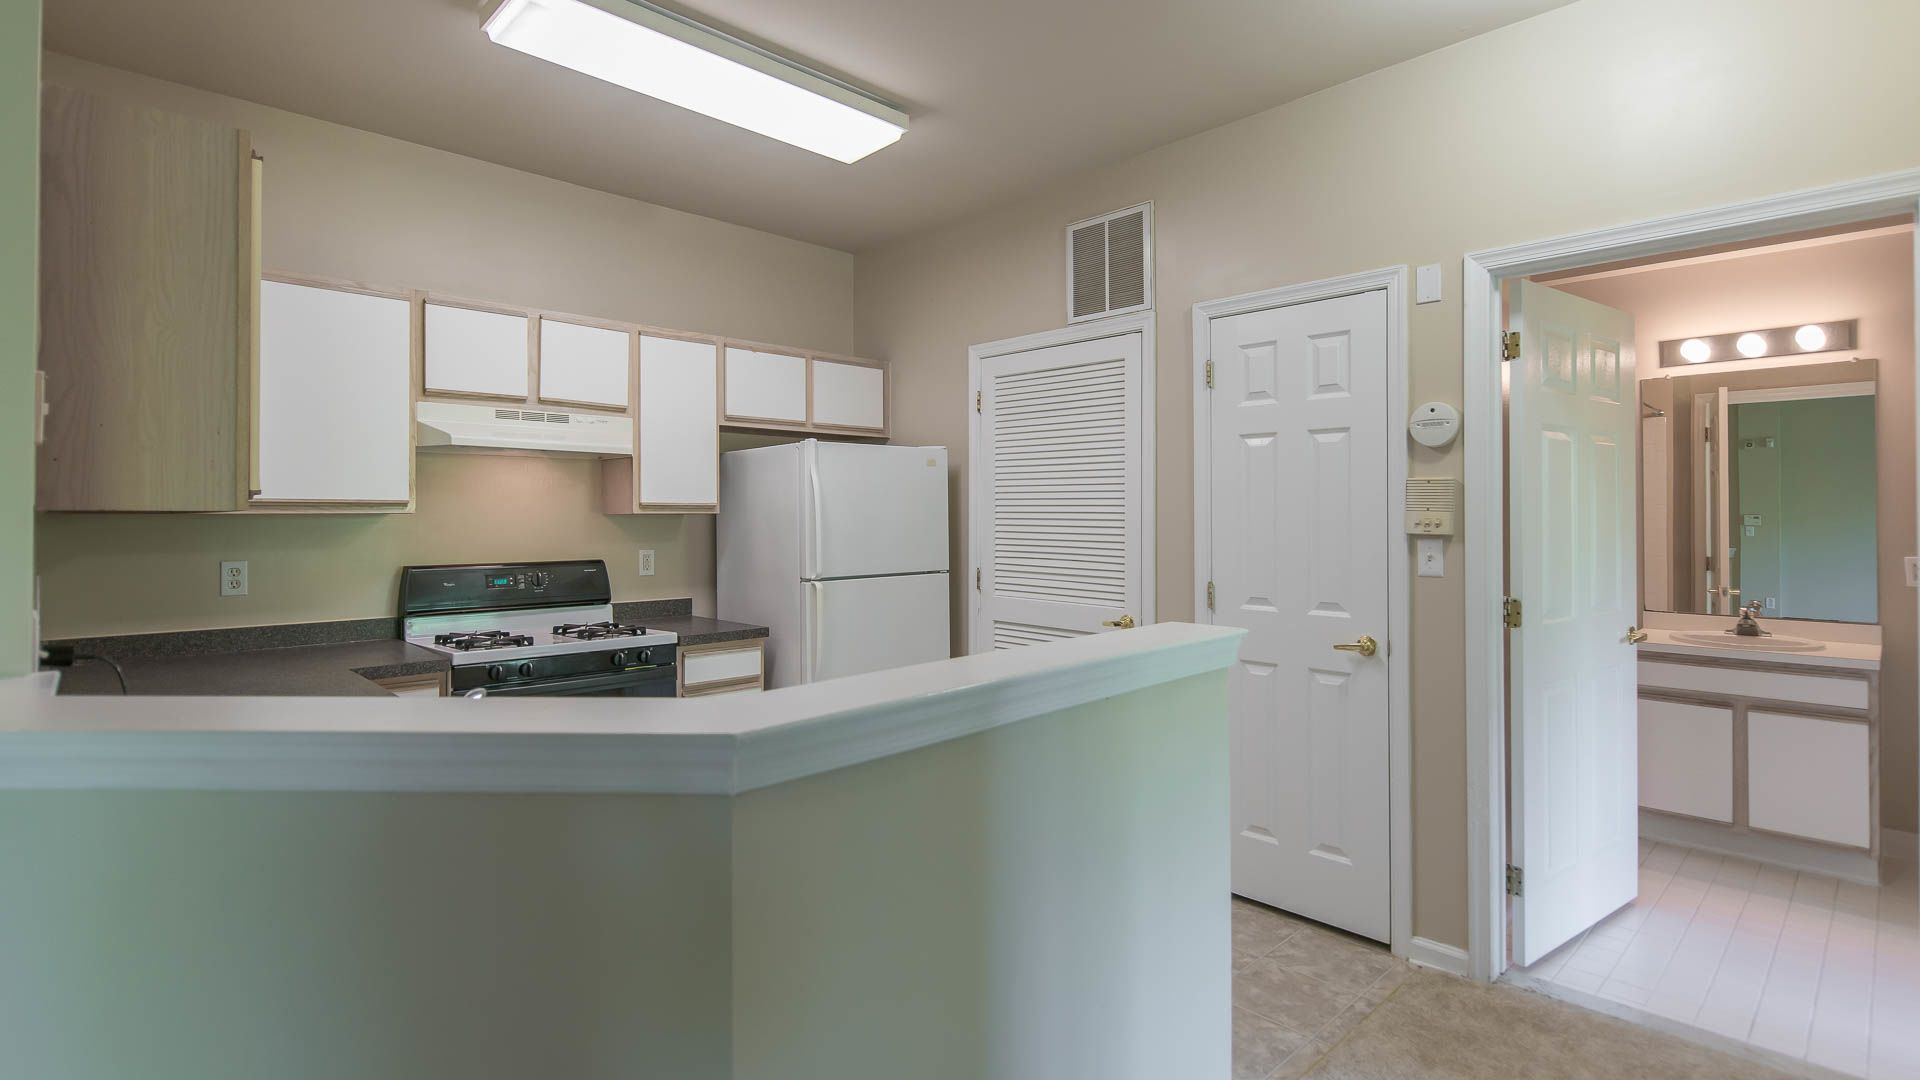 The Highlands At South Plainfield Apartments Reviews In South Plainfield    1300 Cook Lane | EquityApartments.com